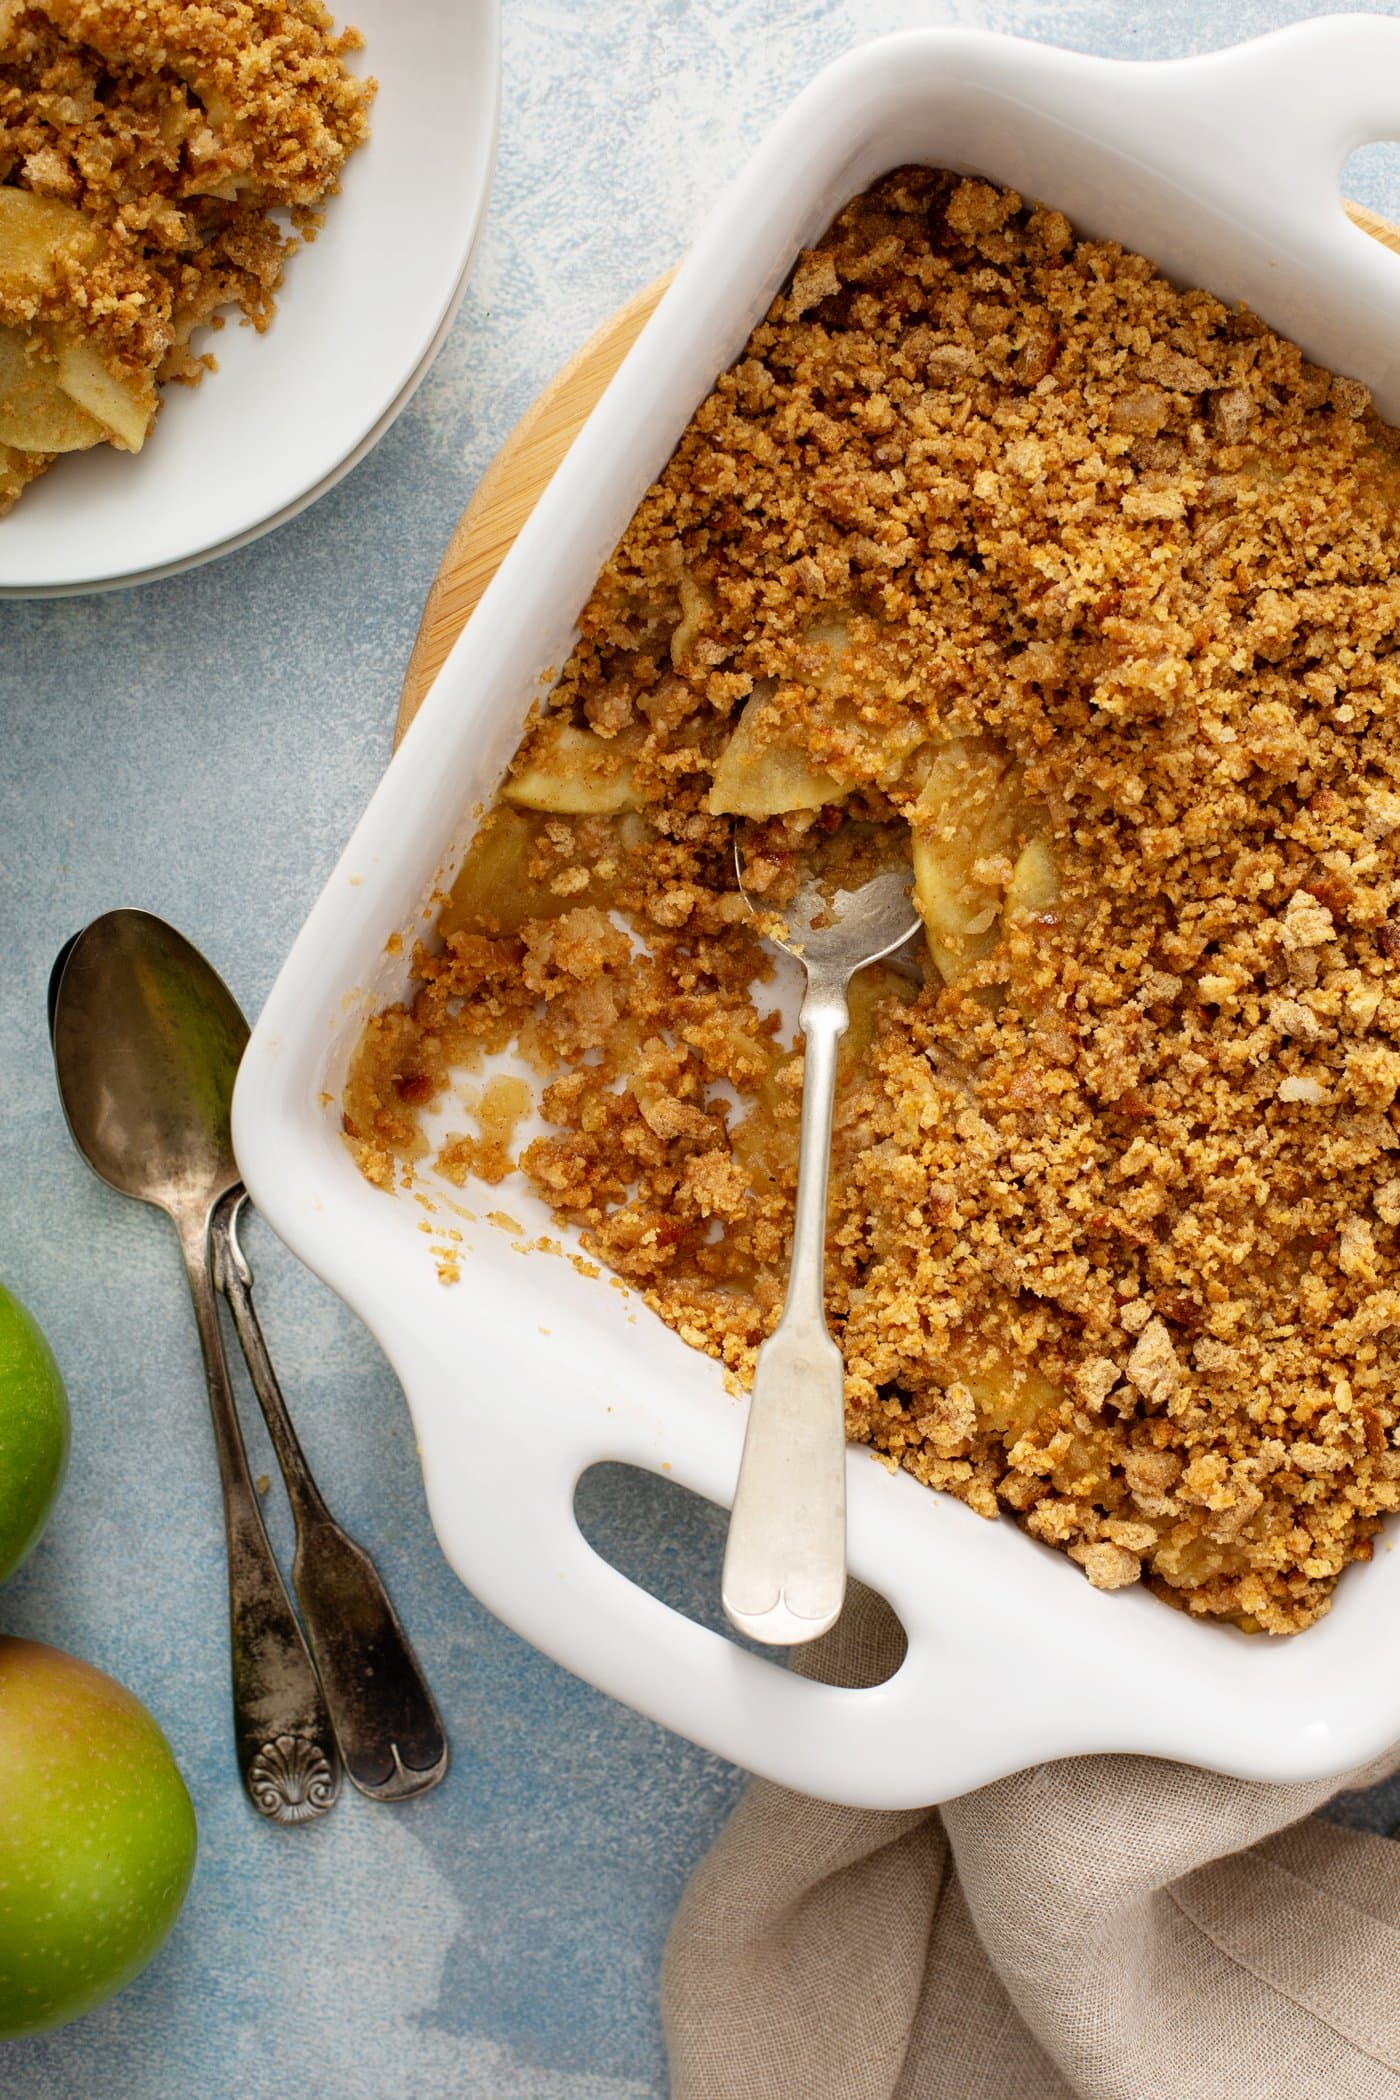 A white baking dish filled with sliced apples and topped with brown bread crumbs. There is a serving spoon in the dish and spoons and dessert dishes filled with apple brown betty in the background.